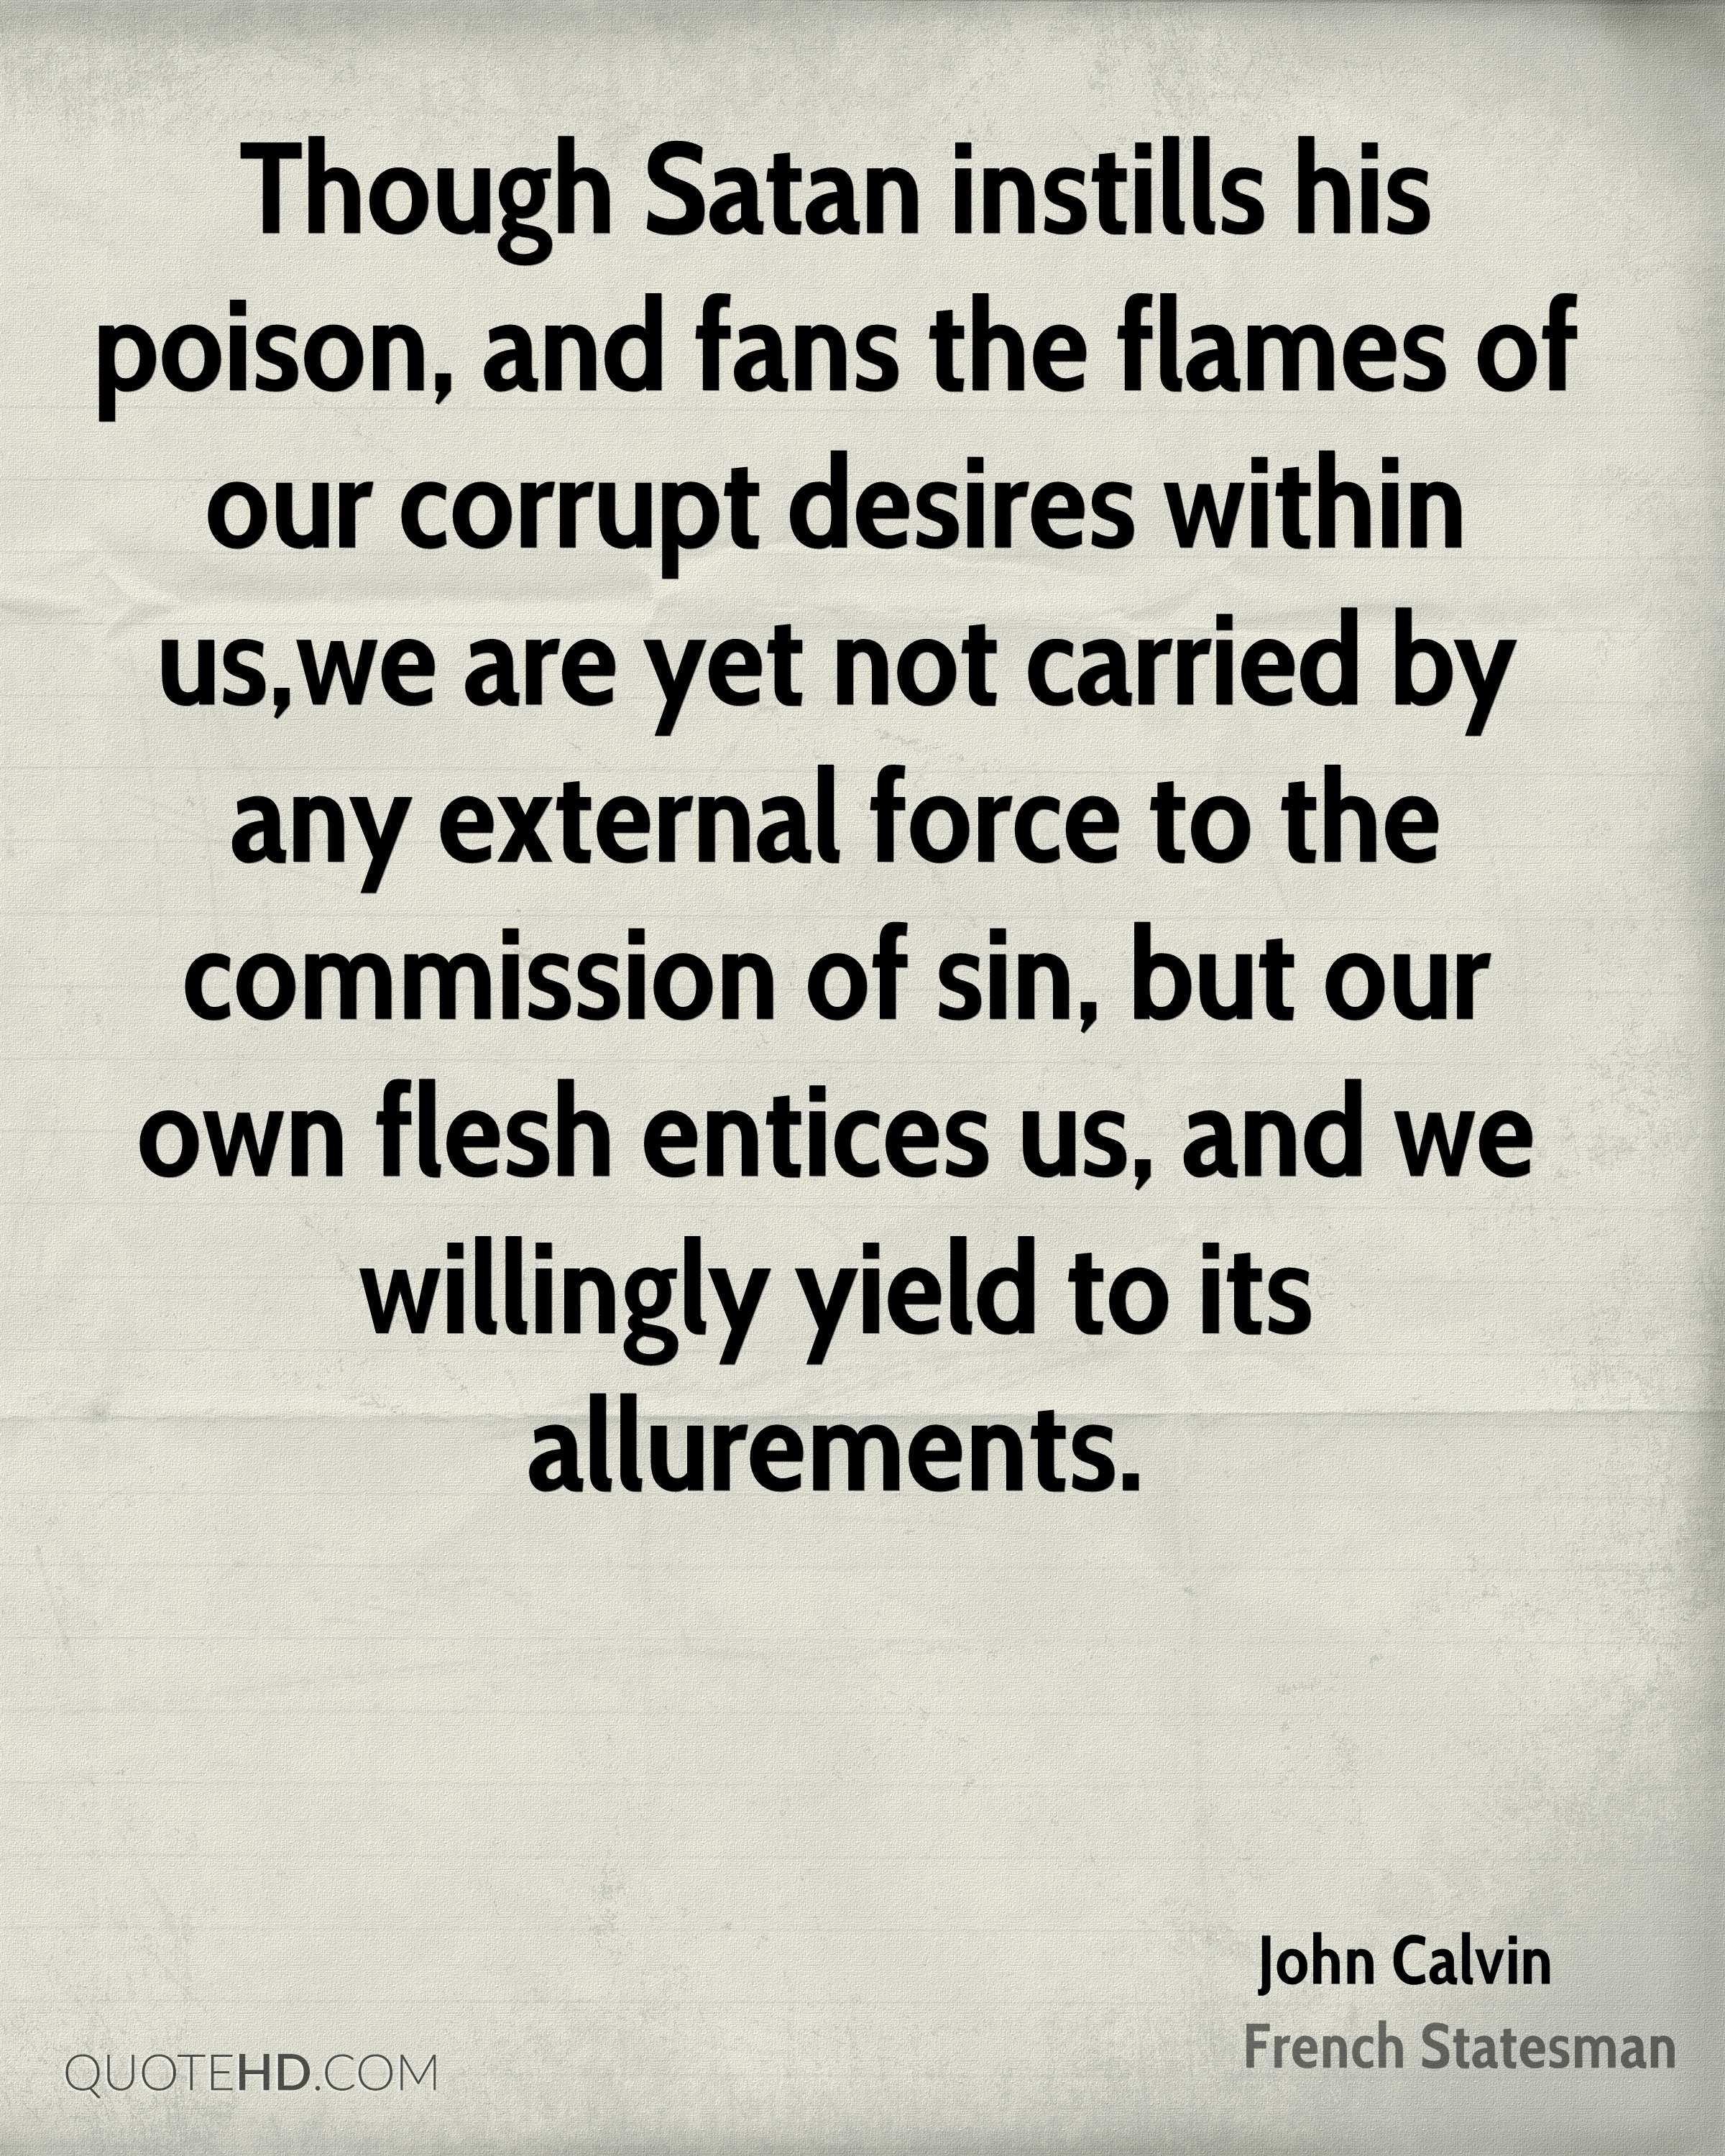 Though Satan instills his poison, and fans the flames of our corrupt desires within us,we are yet not carried by any external force to the commission of sin, but our own flesh entices us, and we willingly yield to its allurements.